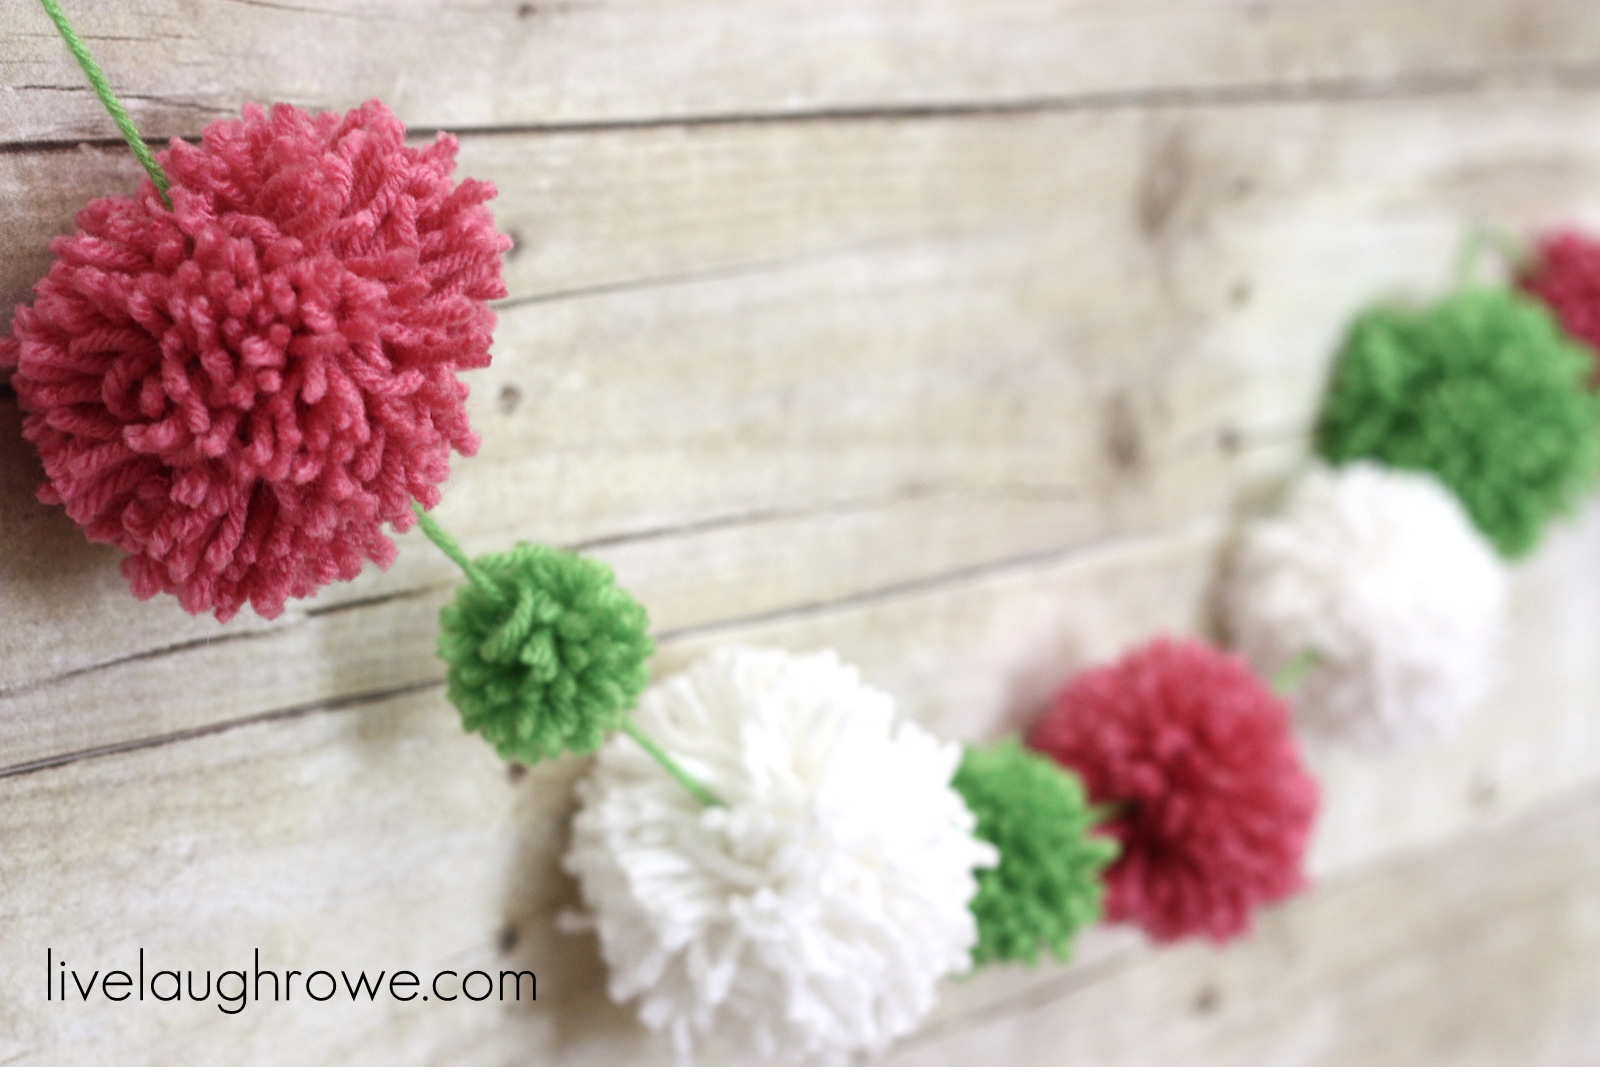 Watermelon Colored Pom Pom Garland with livelaughrowe.com